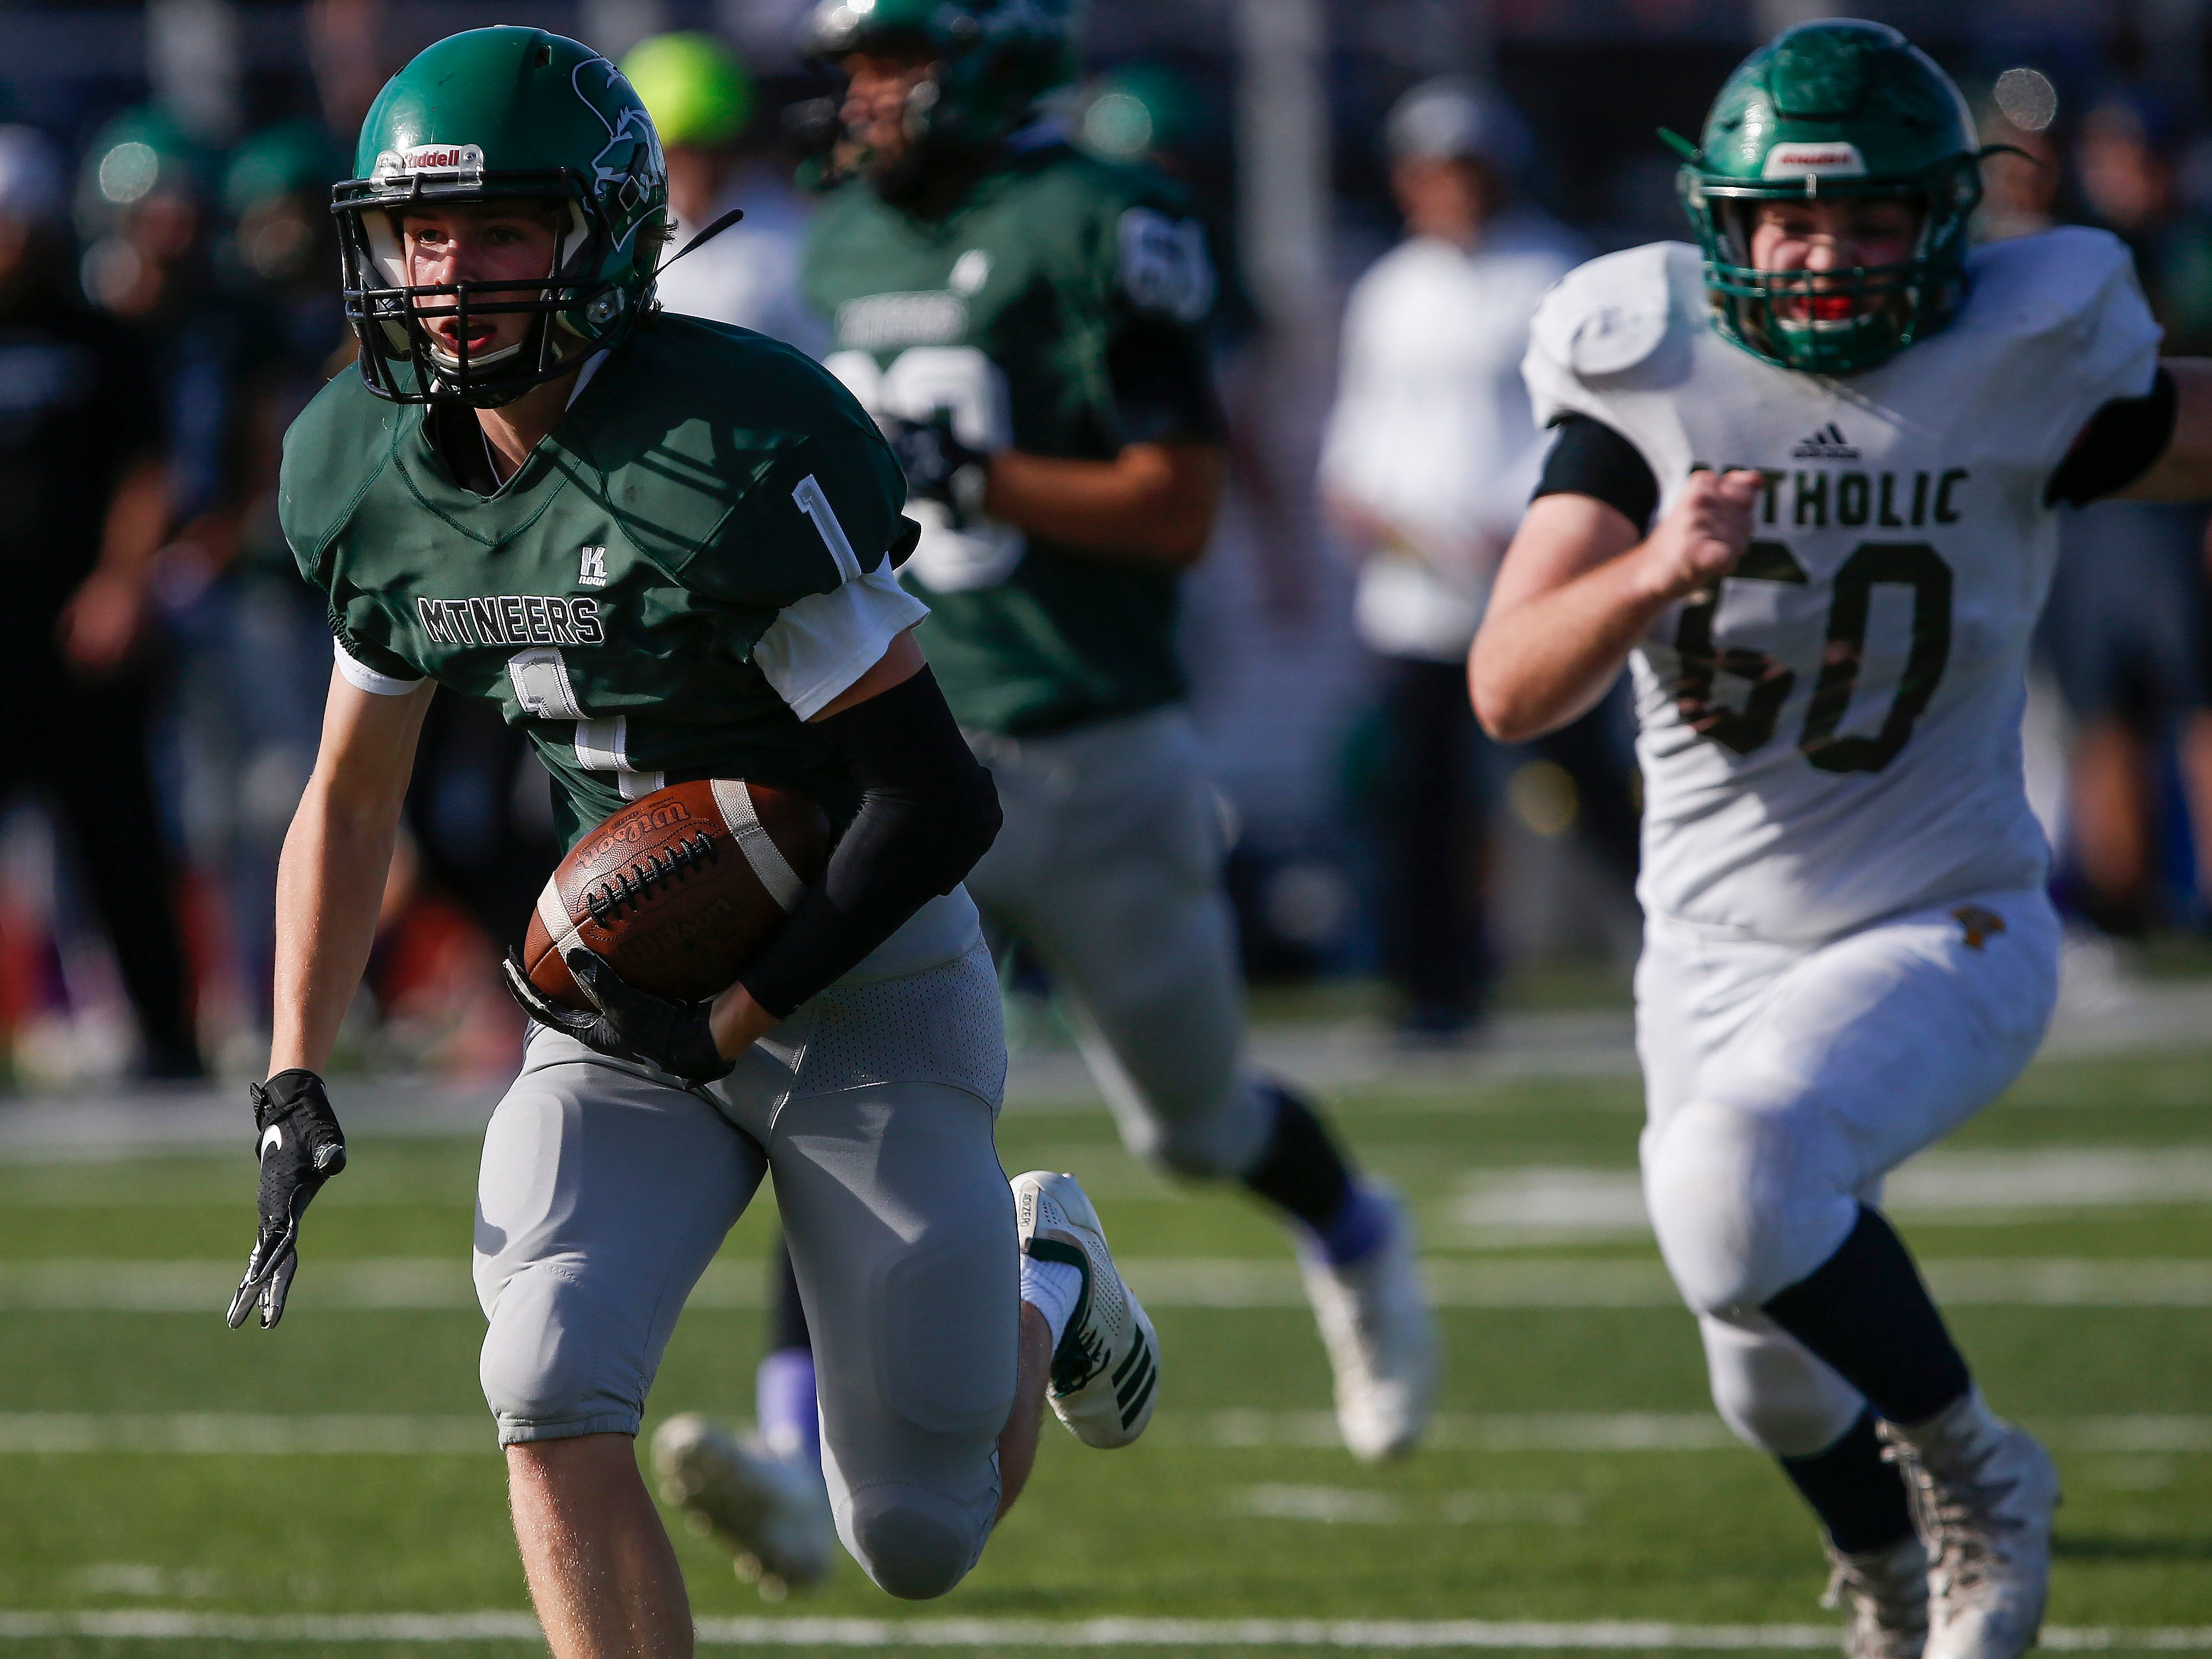 Kelly Vaughn, of Mount Vernon, runs the ball in for a touchdown in the Mountaineers 26-18 win in the Class 3 Quarterfinal game against Springfield Catholic at Mount Vernon High School on Saturday, Nov. 17, 2018.